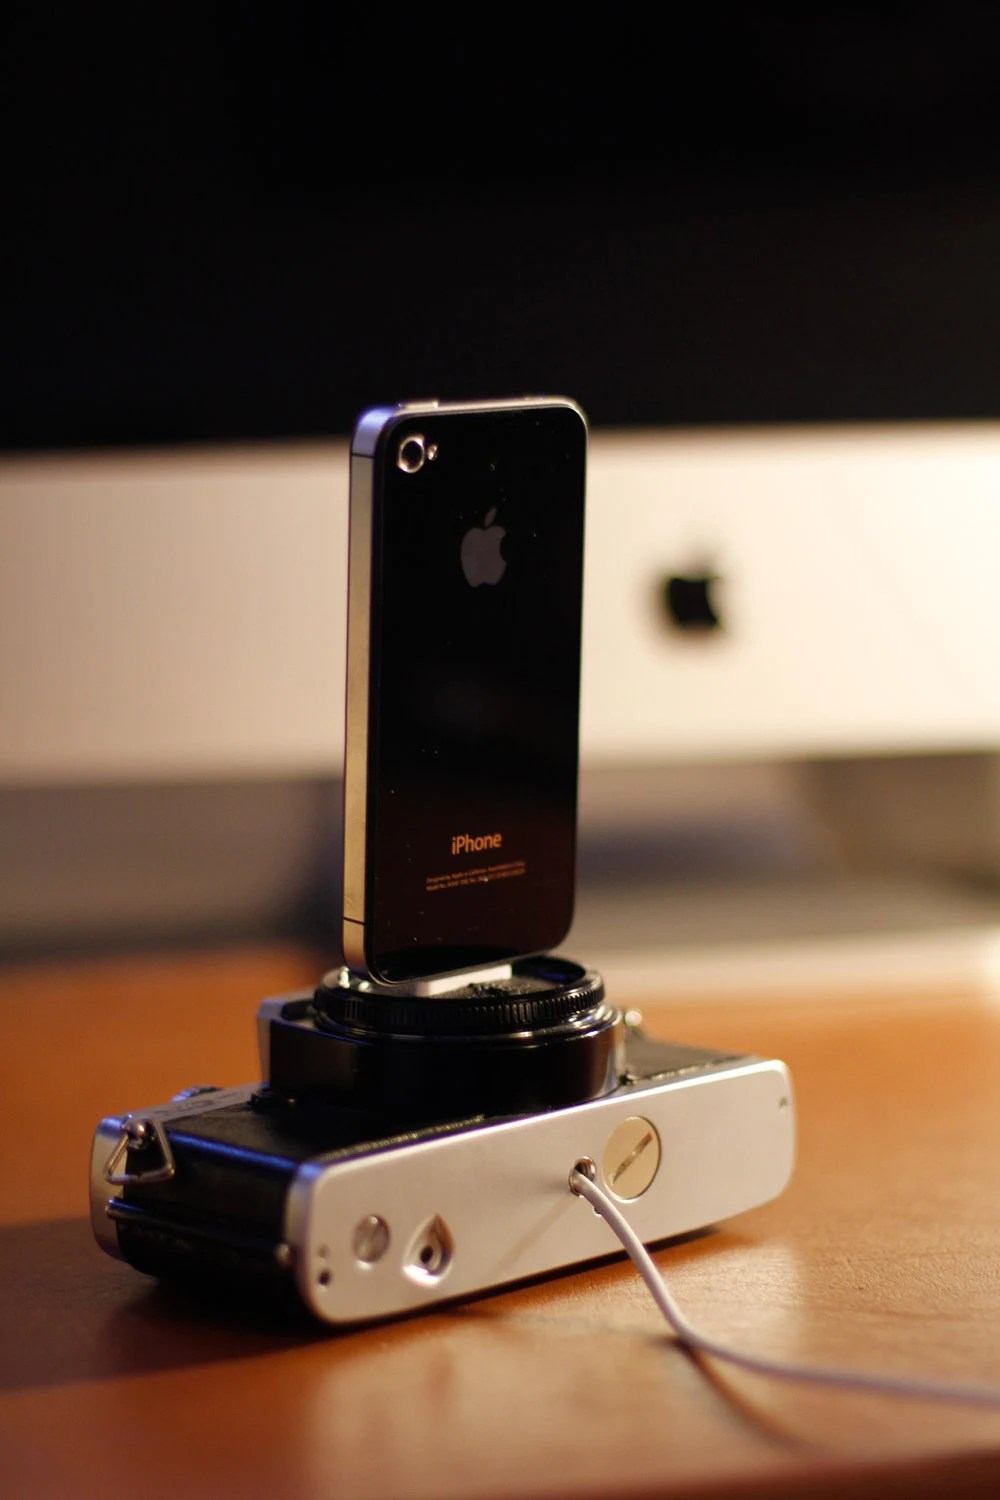 iPhone charger / dock - made from vintage camera